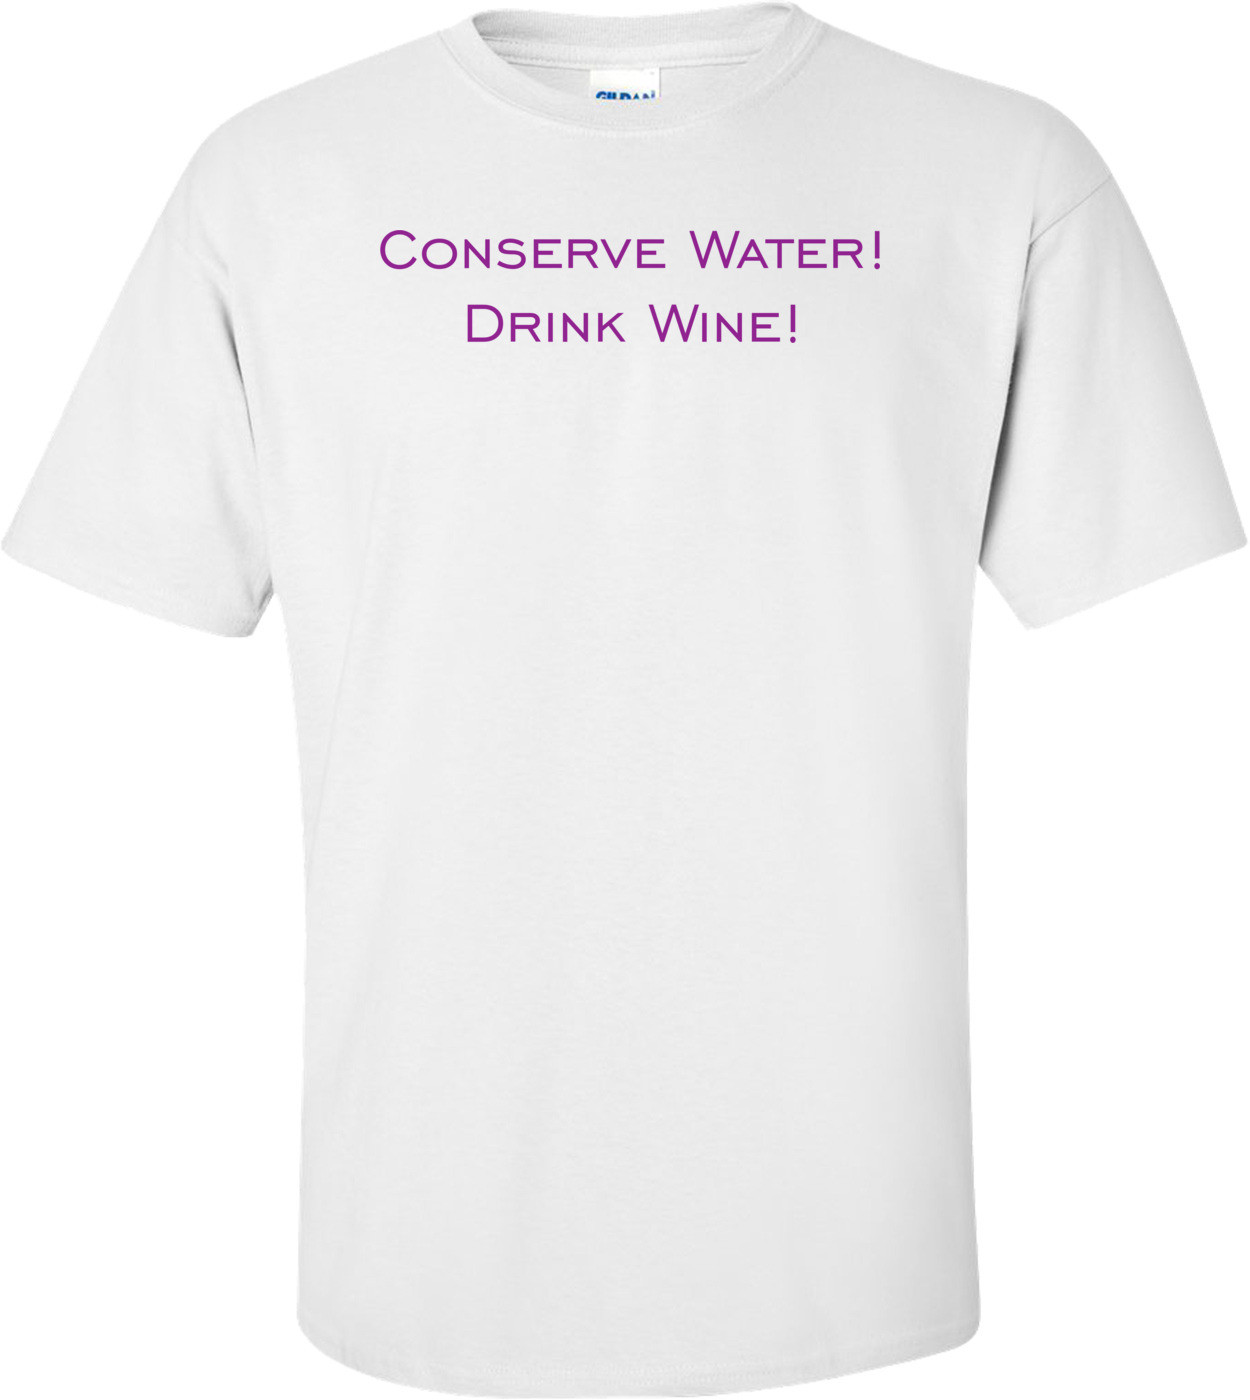 Conserve Water! Drink Wine! Shirt